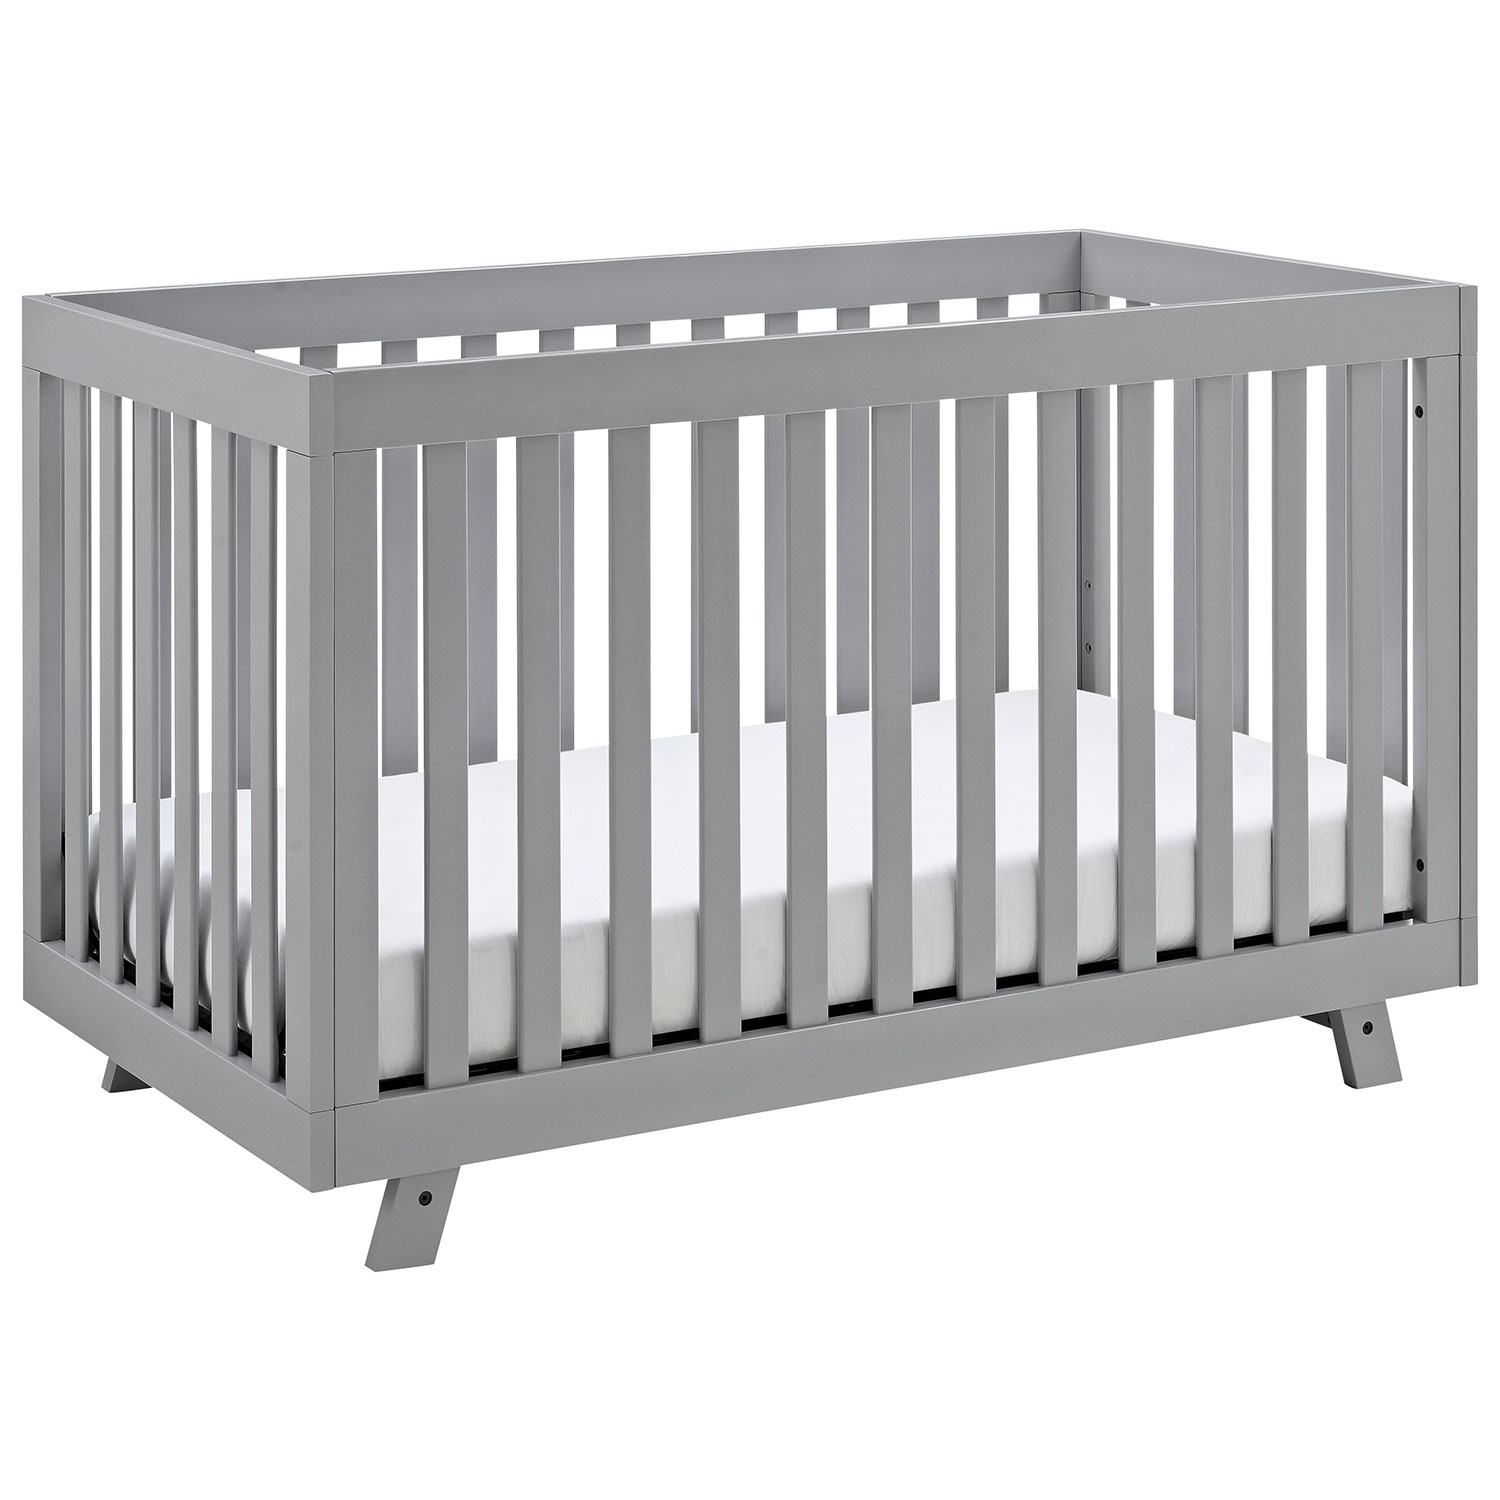 Used crib for sale ottawa - Status Beckett 3 In 1 Convertible Crib Pebble Grey